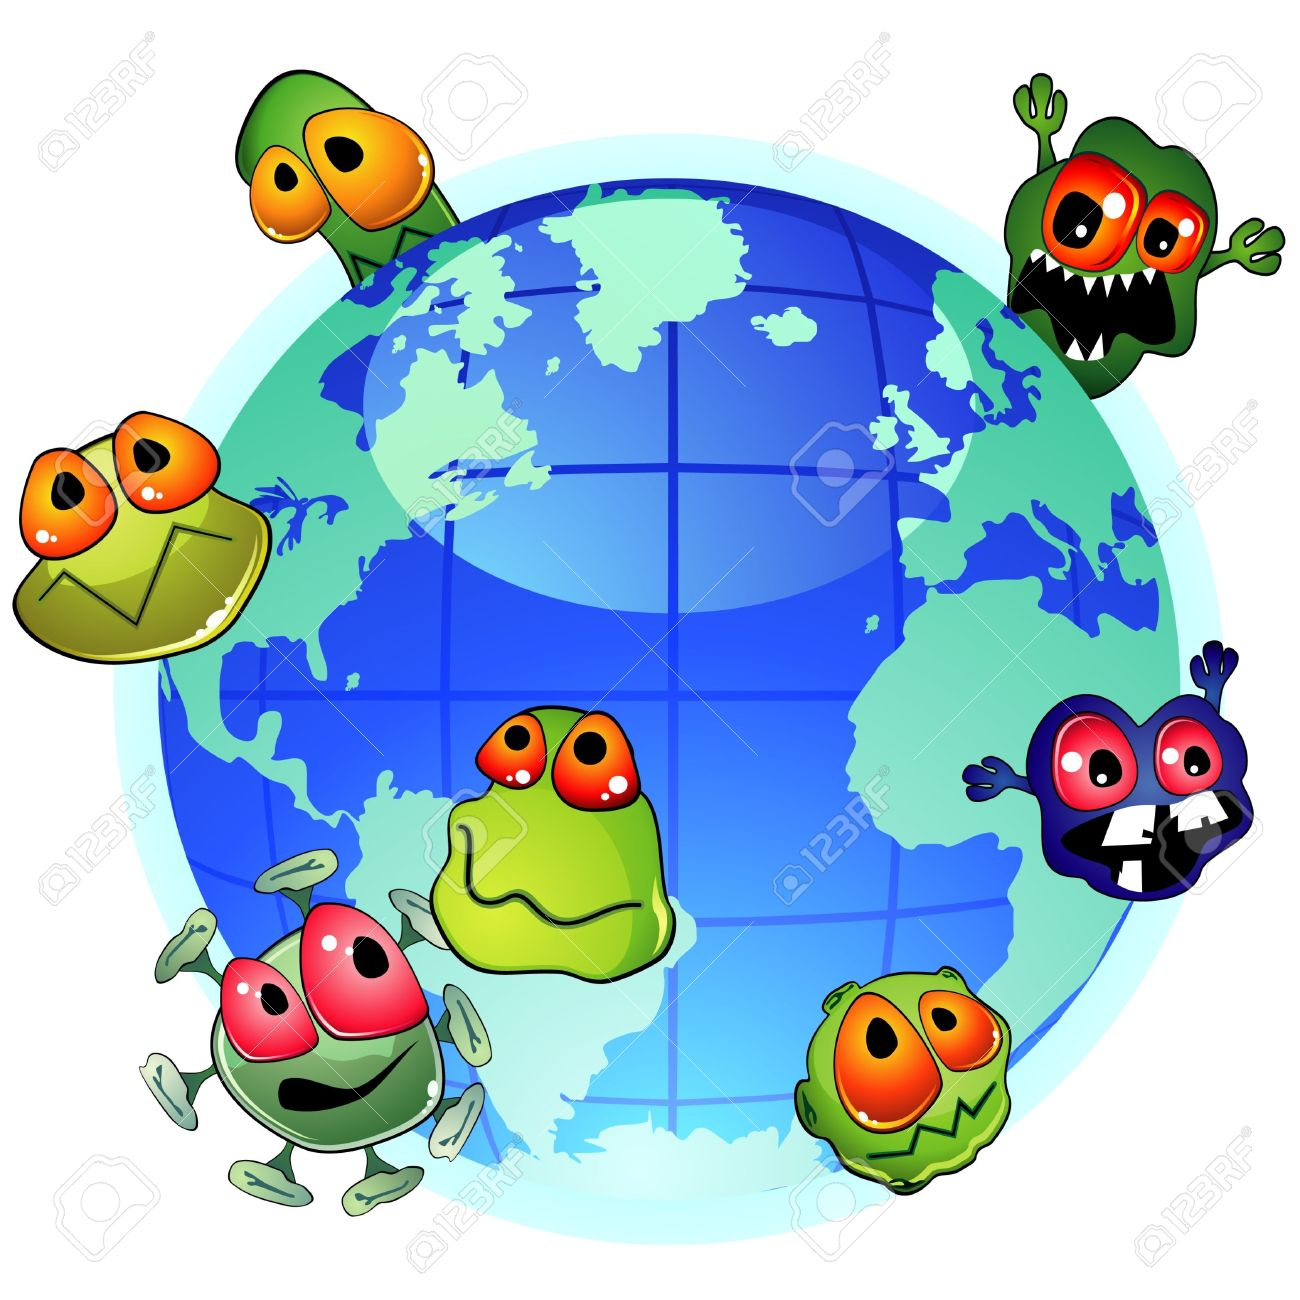 infection clipart clipart panda free clipart images water pollution clipart pictures Water Pollution